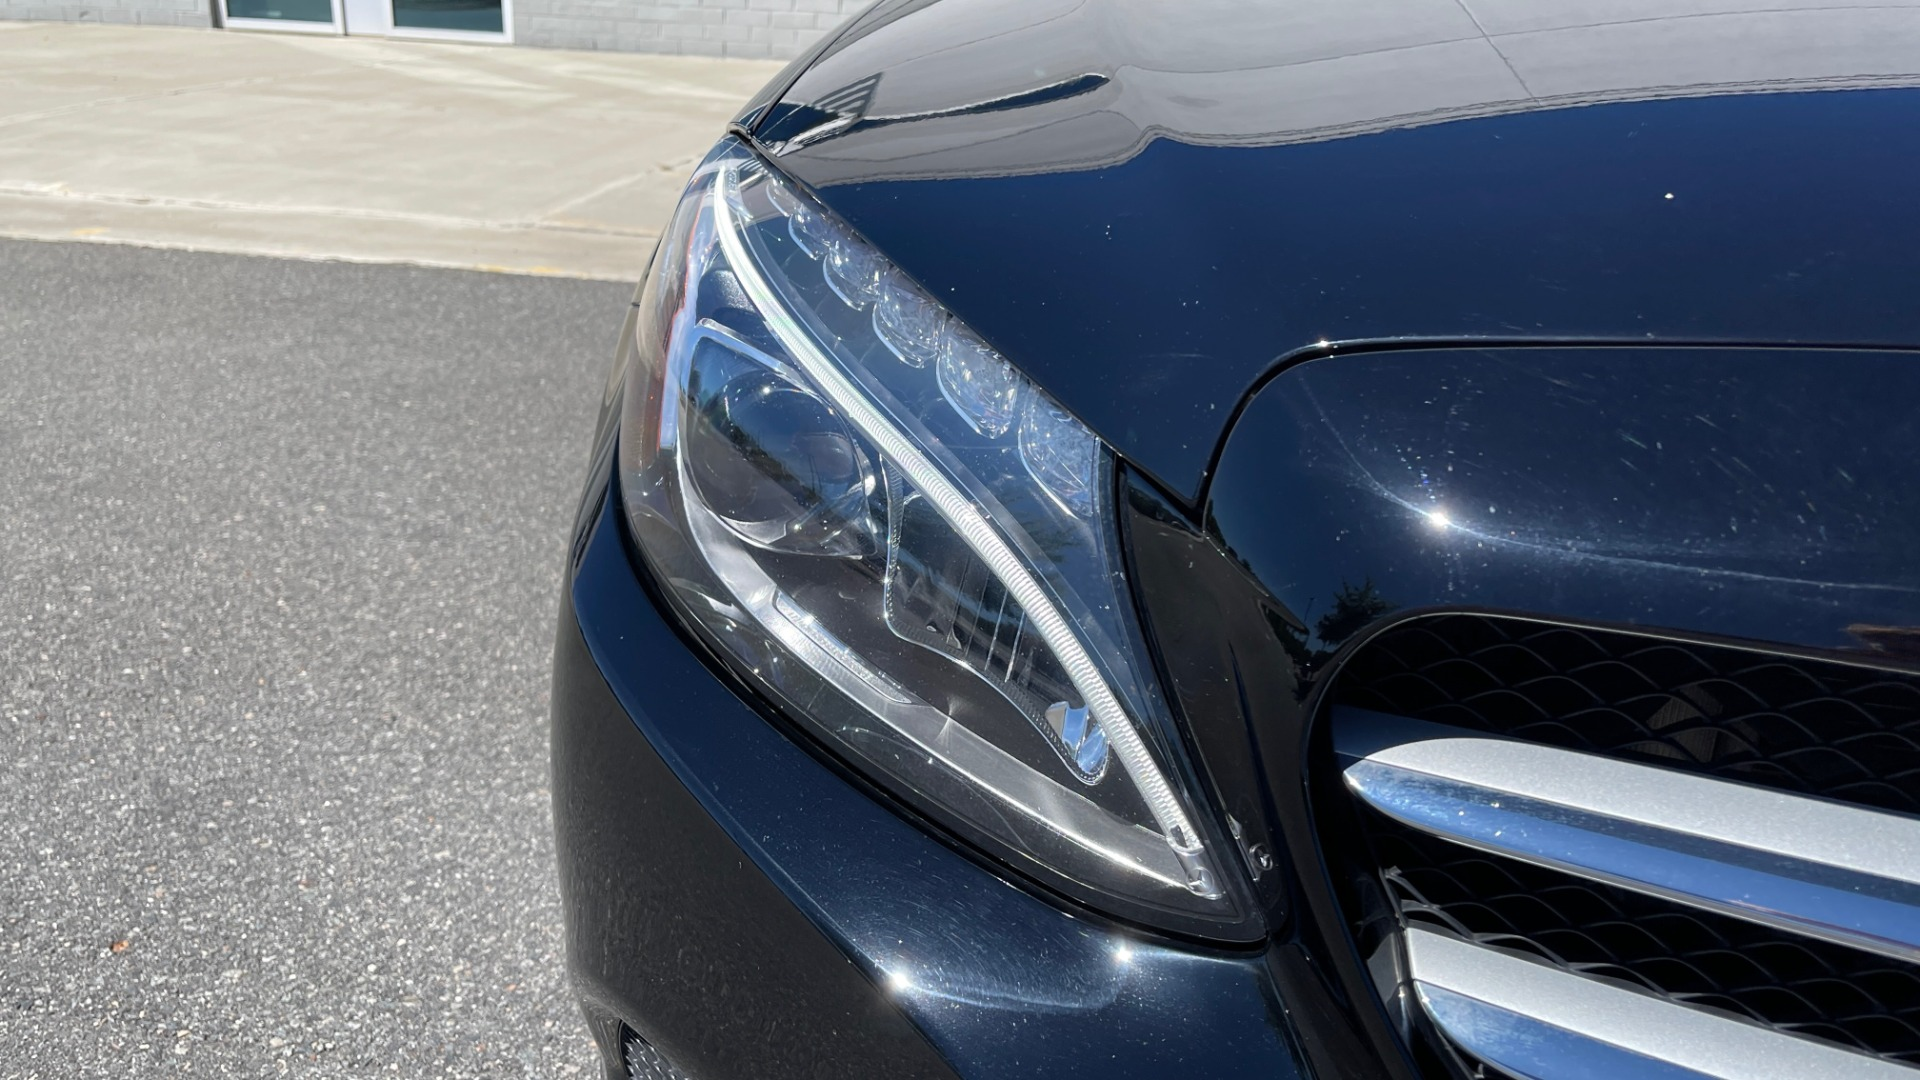 Used 2018 Mercedes-Benz C-CLASS C 300 PREMIUM / APPLE CARPLAY / SUNROOF / REARVIEW for sale $31,995 at Formula Imports in Charlotte NC 28227 11